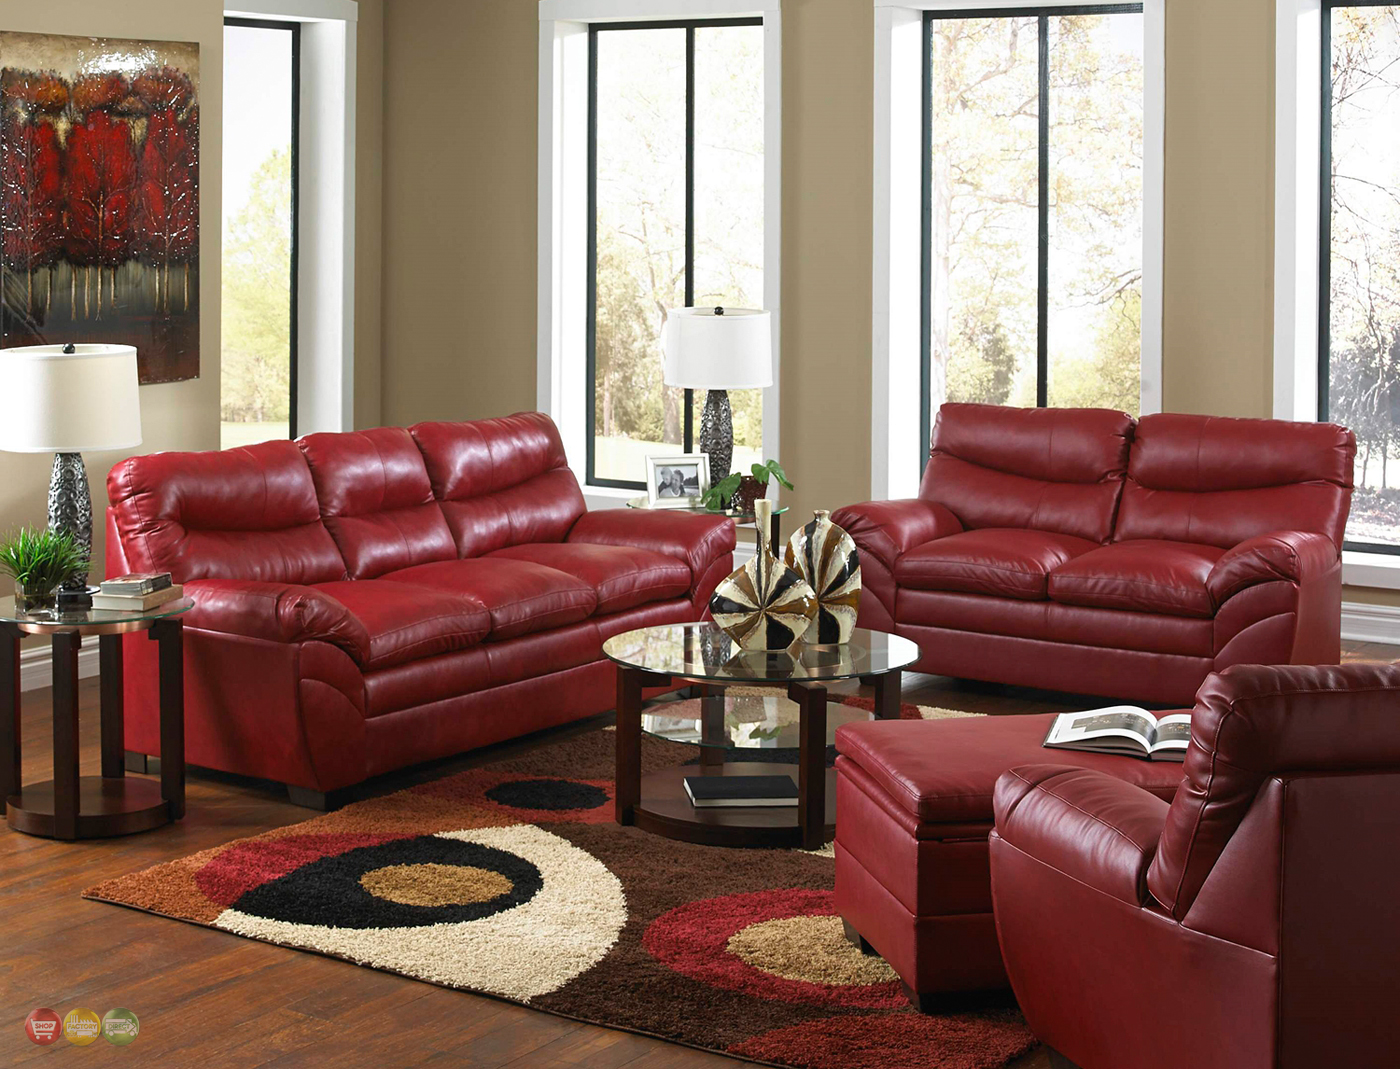 Red Leather Living Room Sets Living Room With Red Leather Sofa House Decor